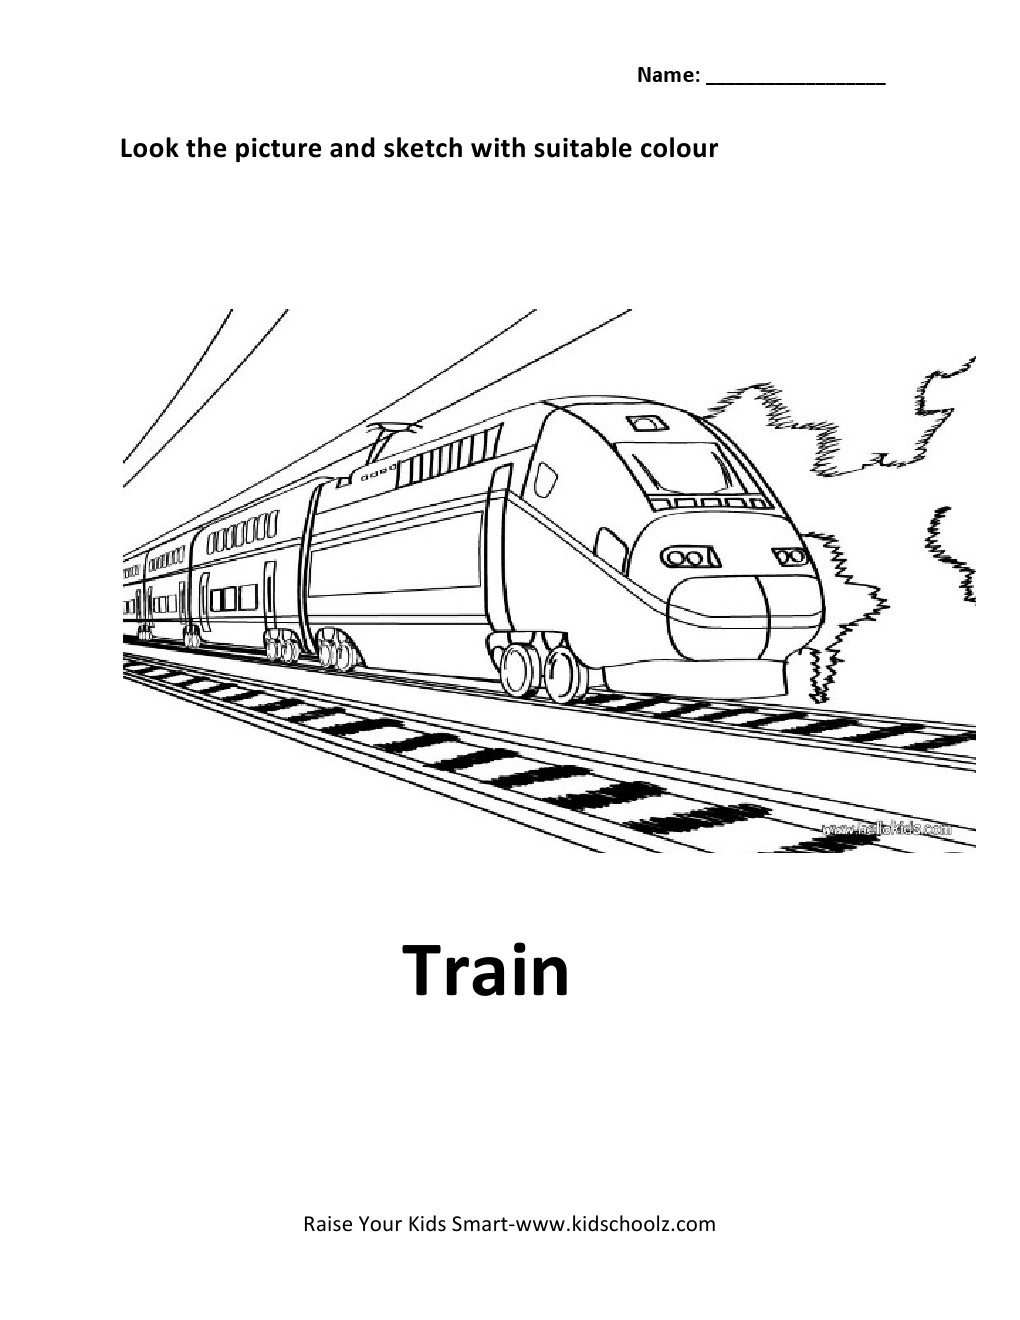 Colouring sheets for lkg - Colouring Worksheets For Lkg Vehicles Colouring Worksheet Train